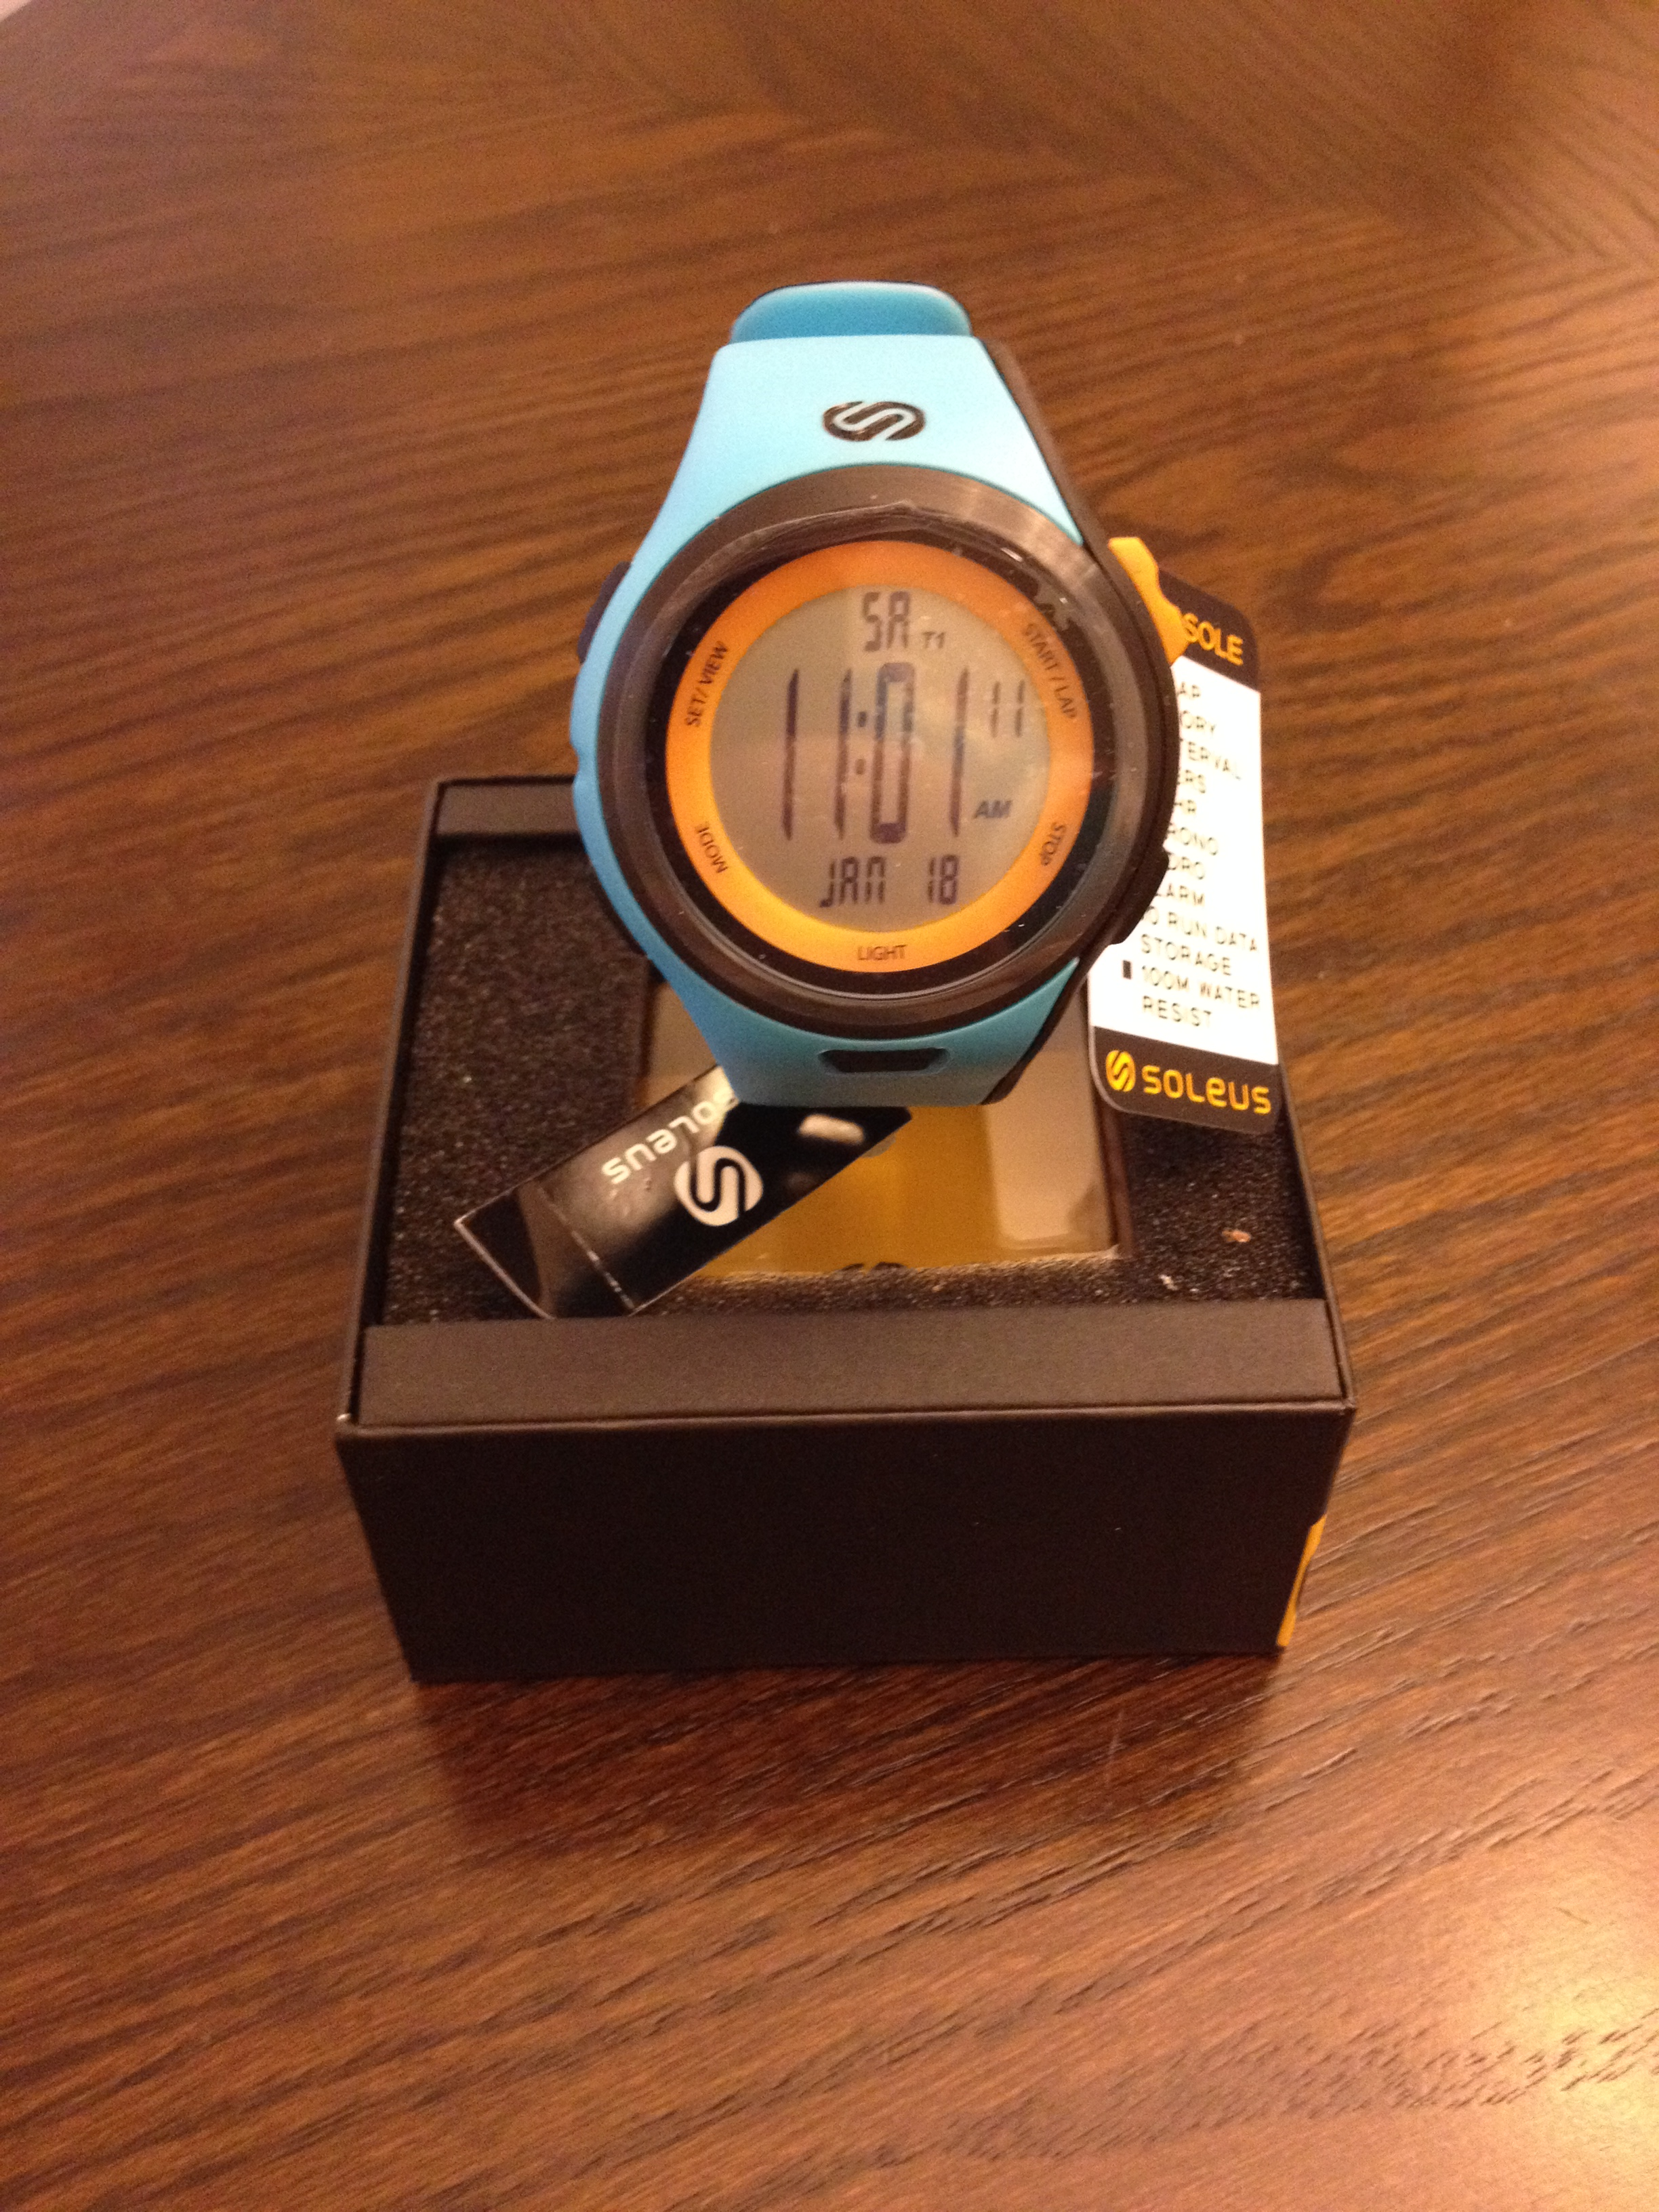 The Soleus Ultra Sole running watch in Bright Blue/Orange - Photo by Matt Rasmussen